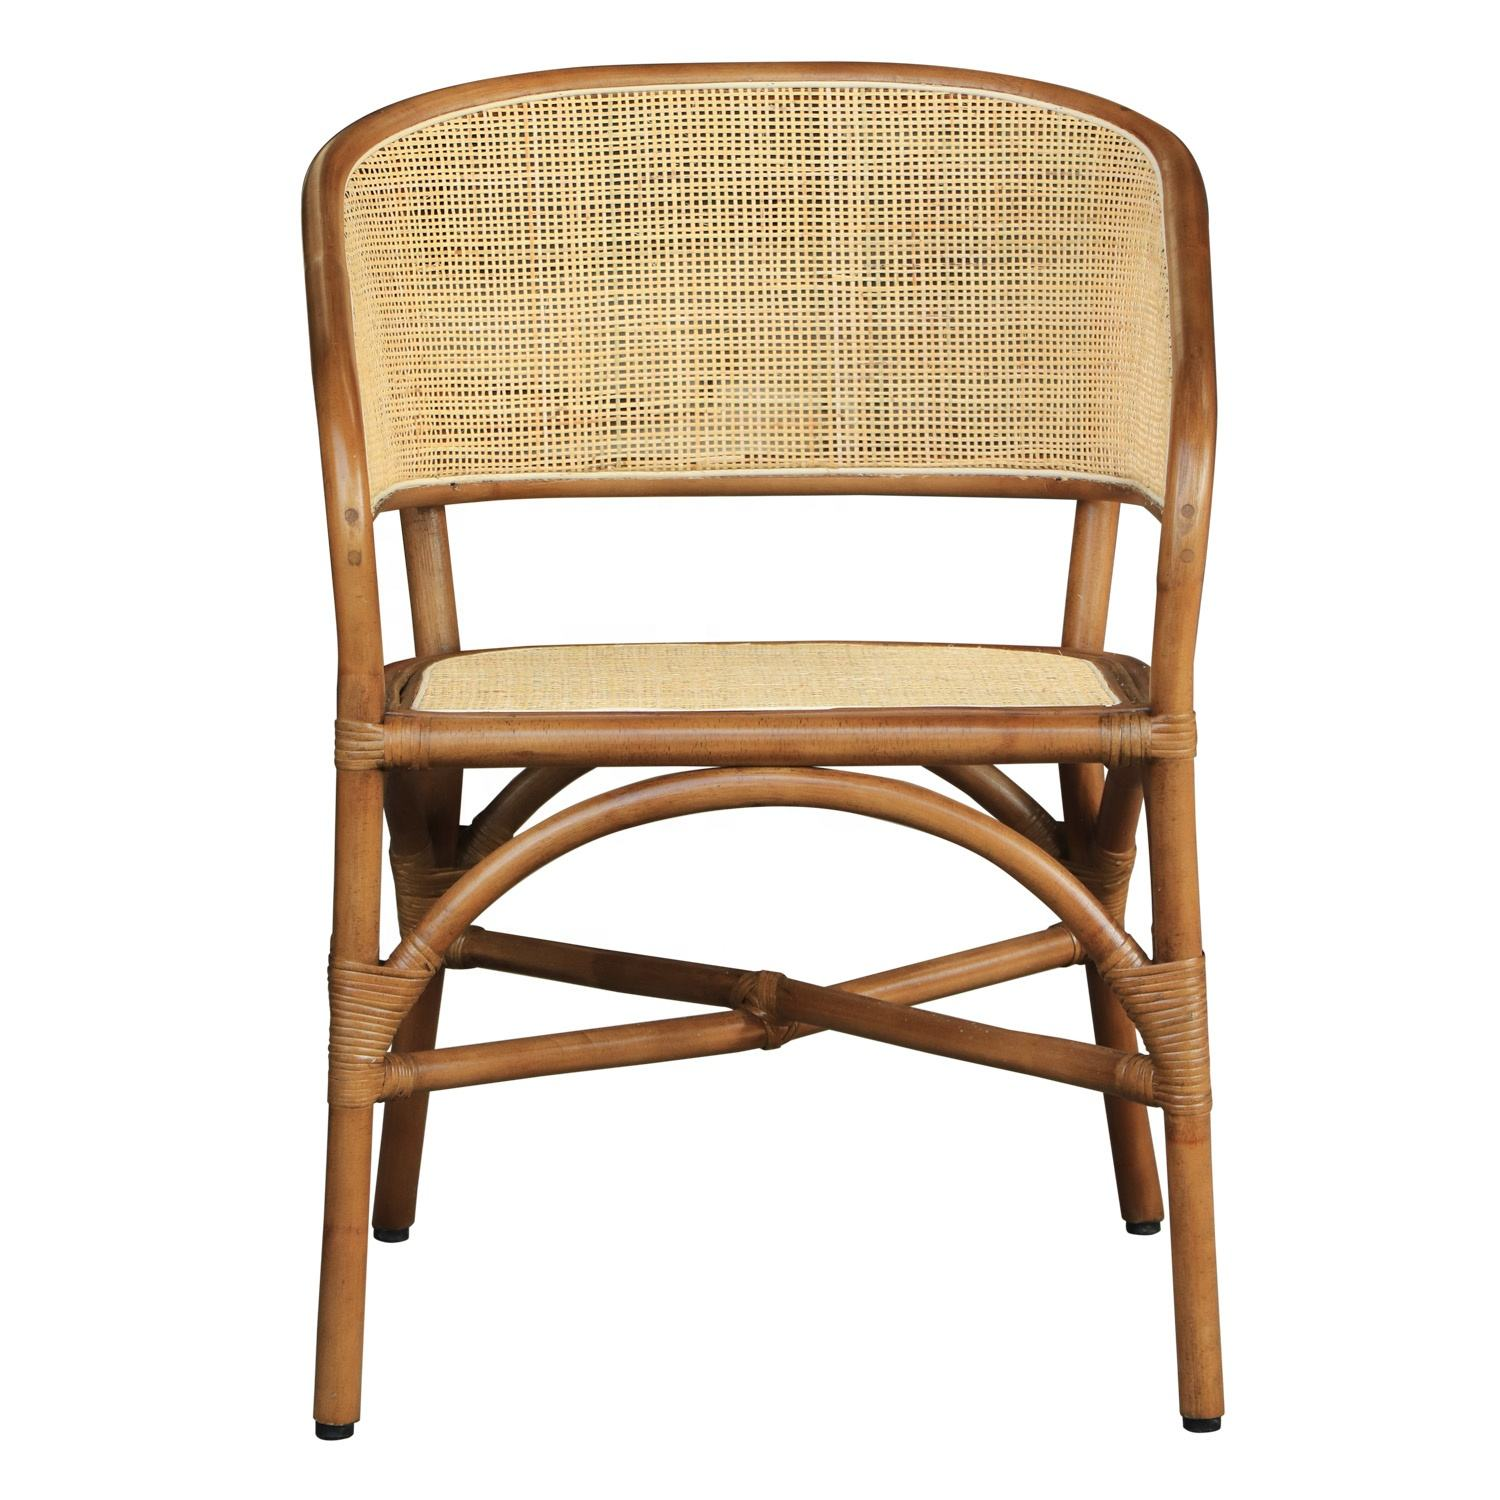 Natural Rattan Occasional Living Room Chair with Arm Home Furniture